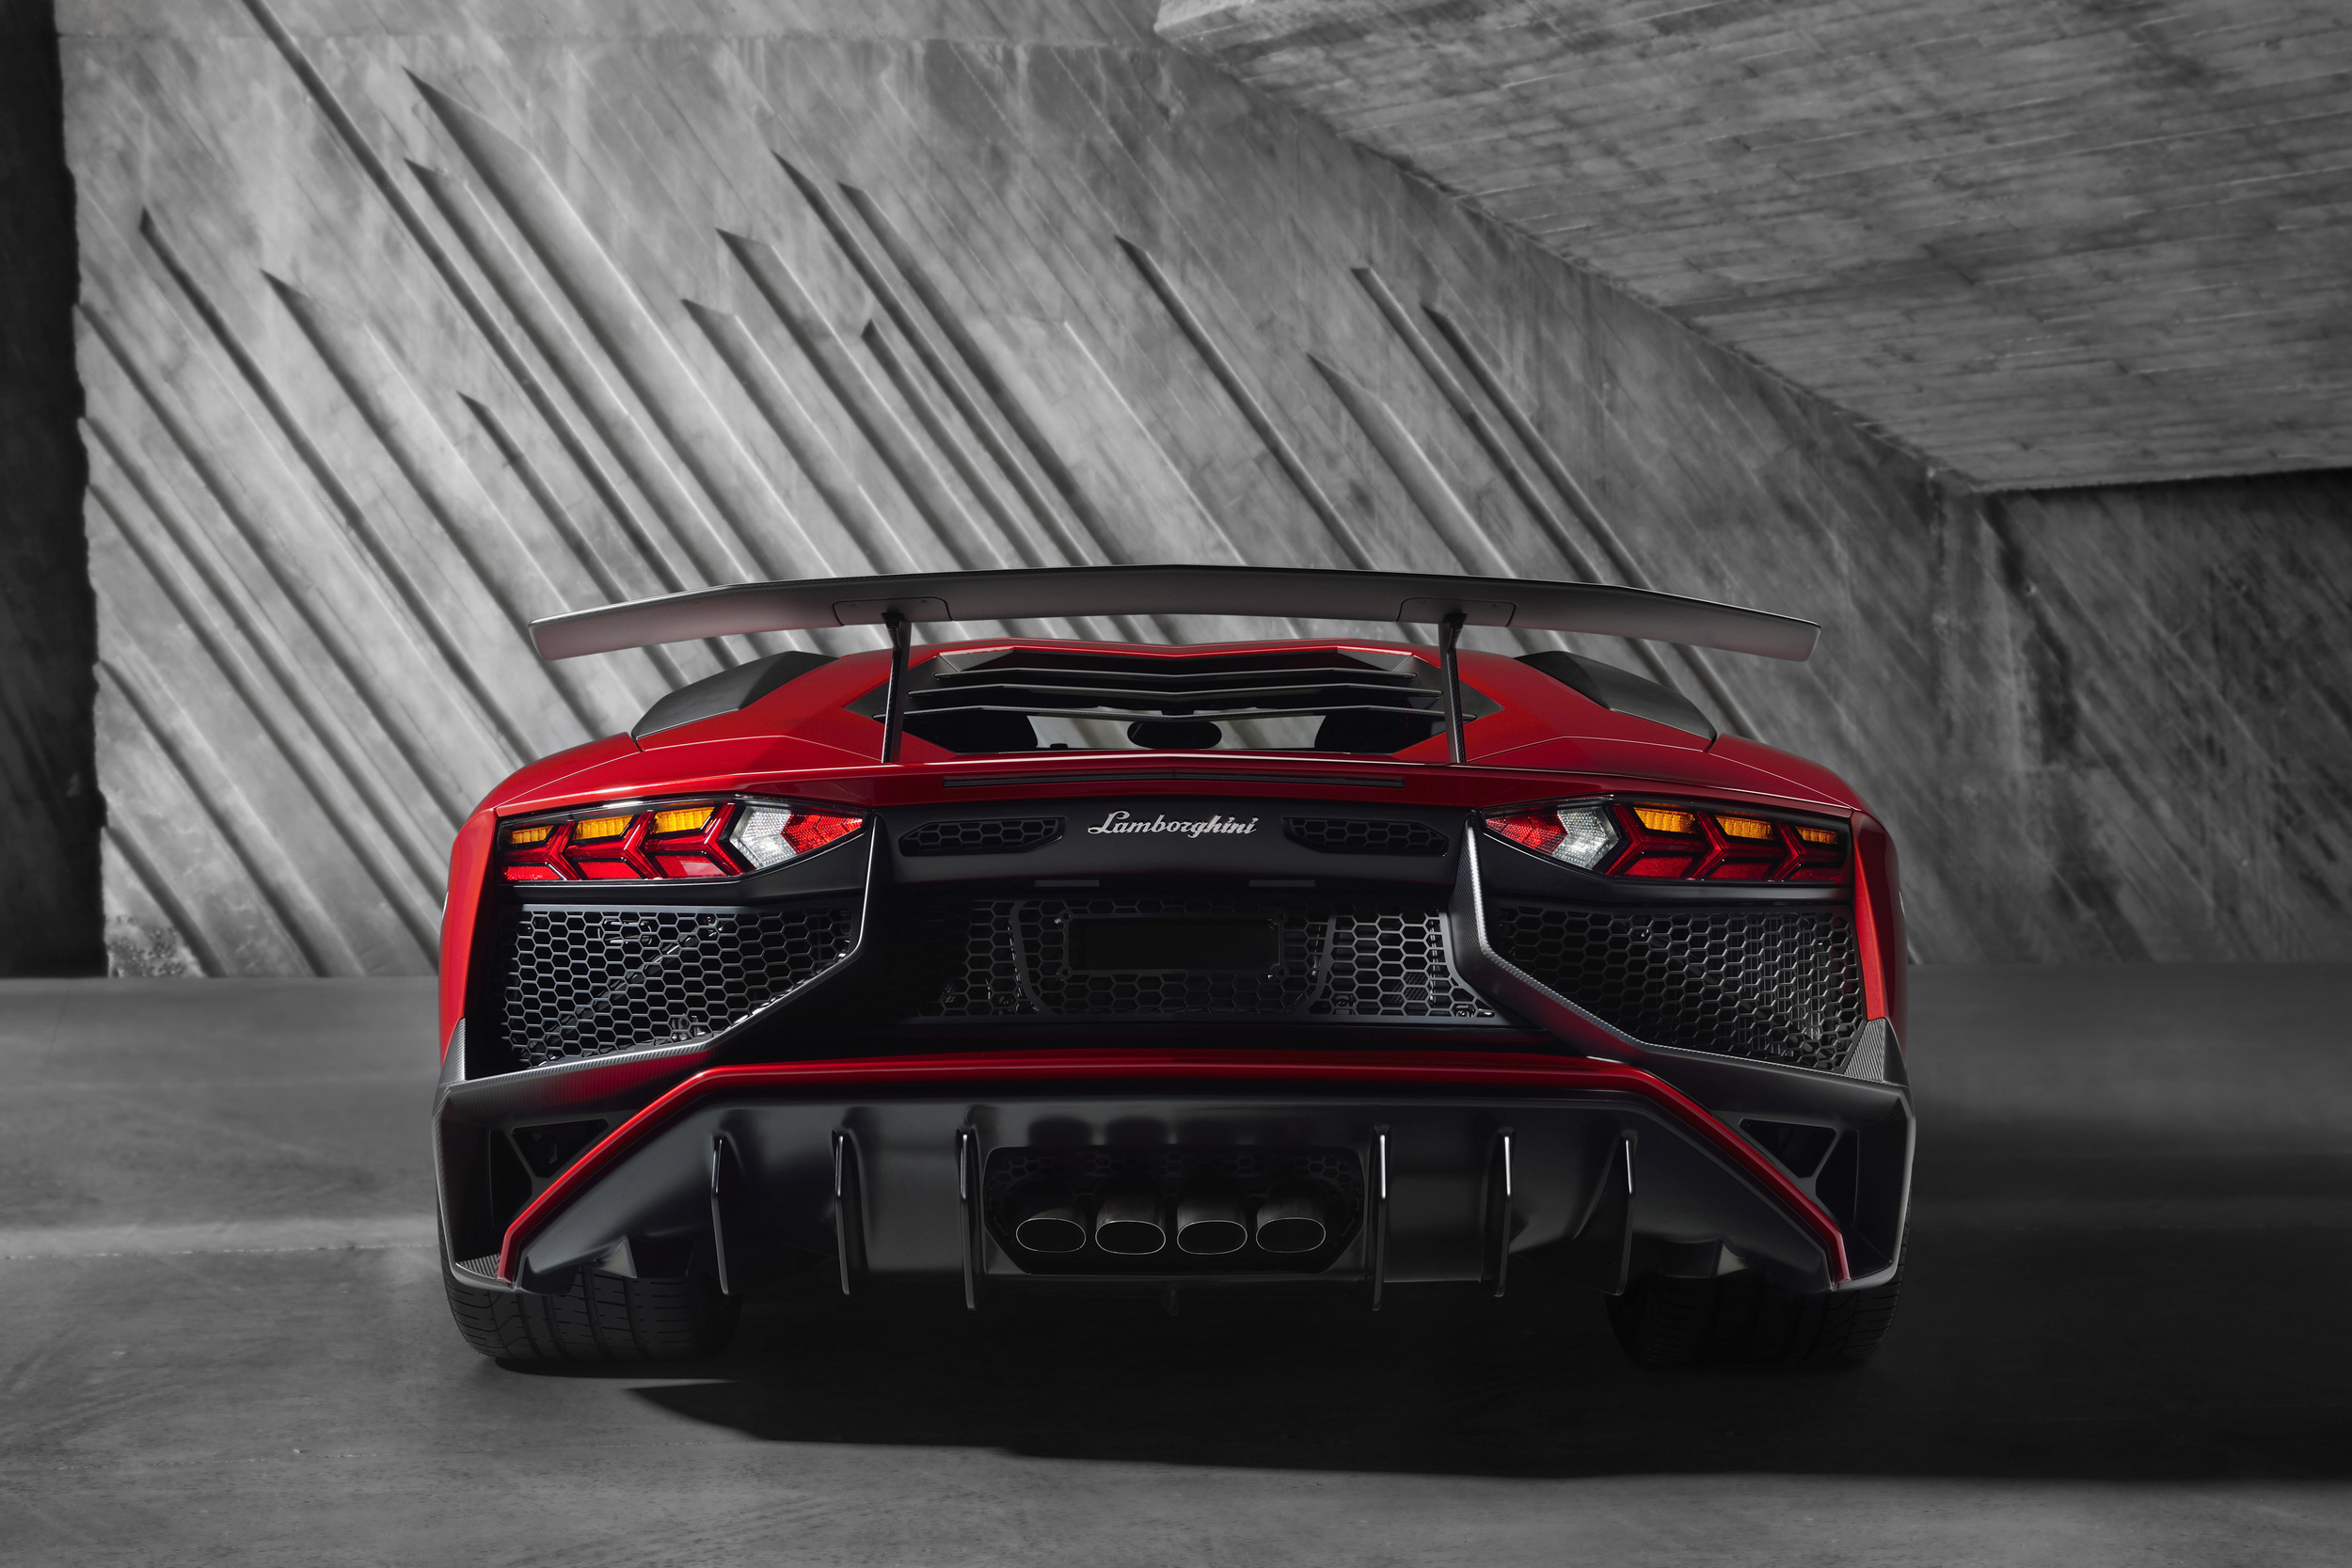 on a discounts more t doesn automobile homeowners turbochargedmedia to cepheus haves and must might cost tips huracan home follow for it arm instagram blu car insurance be an but lamborghini leg have you pin